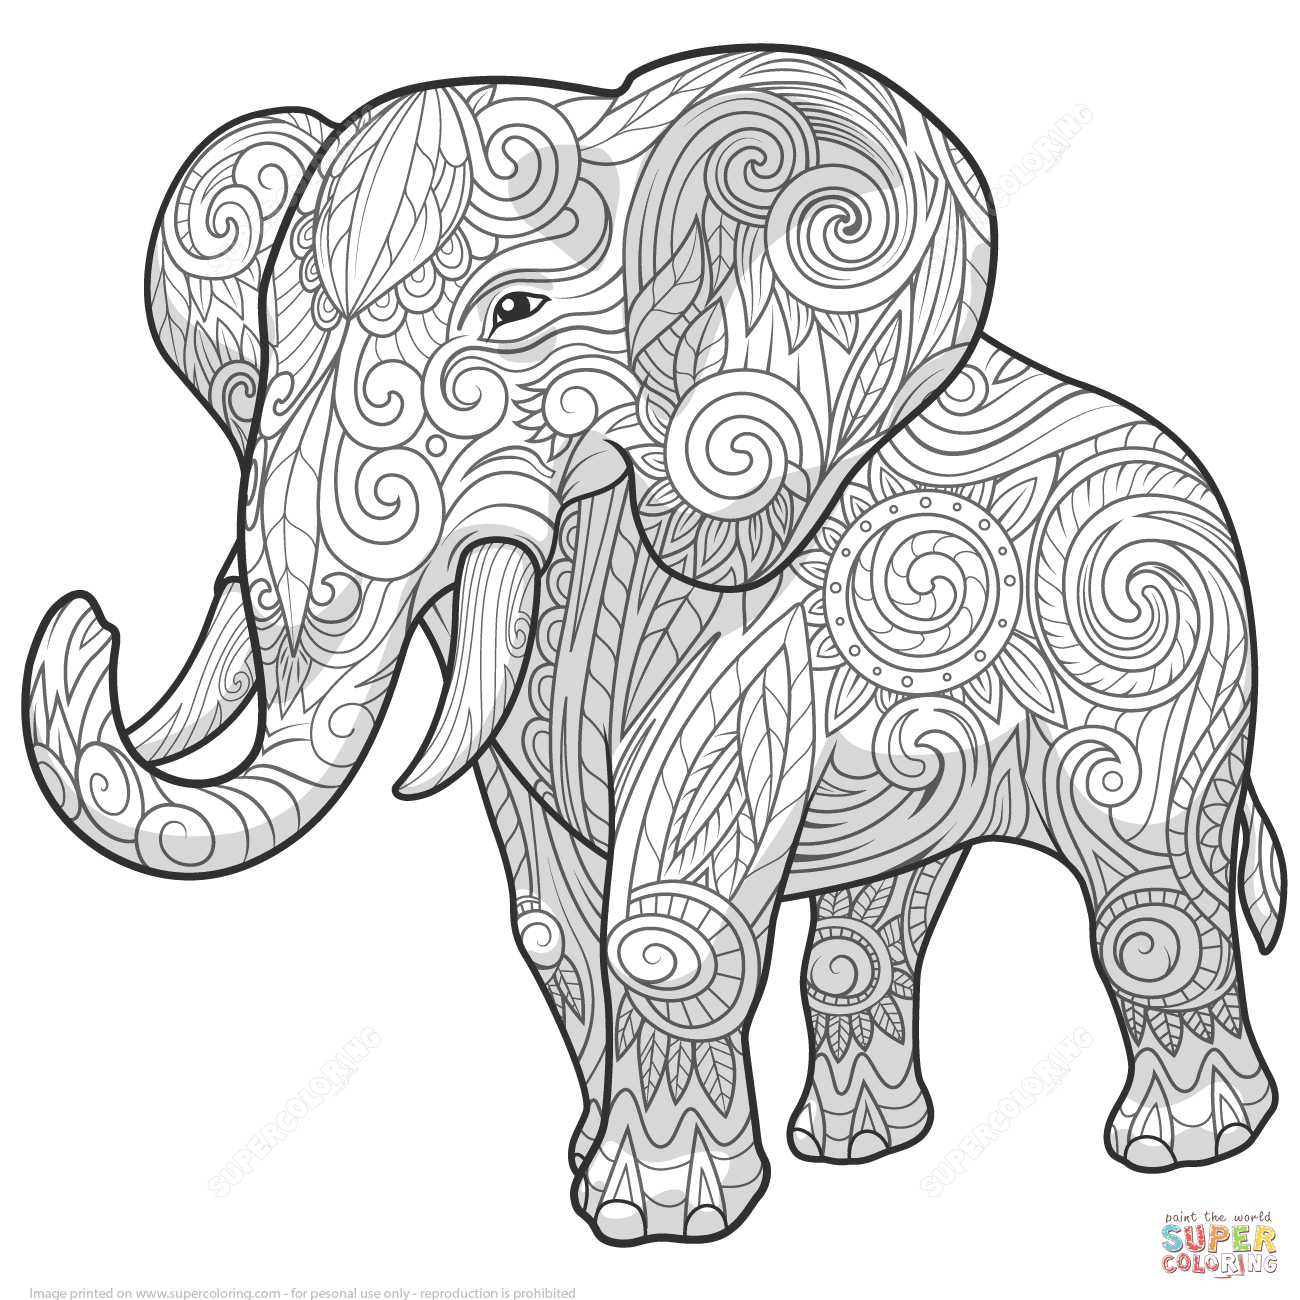 zentangle coloring pages free printable printable zentangle coloring pages free coloring home pages free zentangle coloring printable